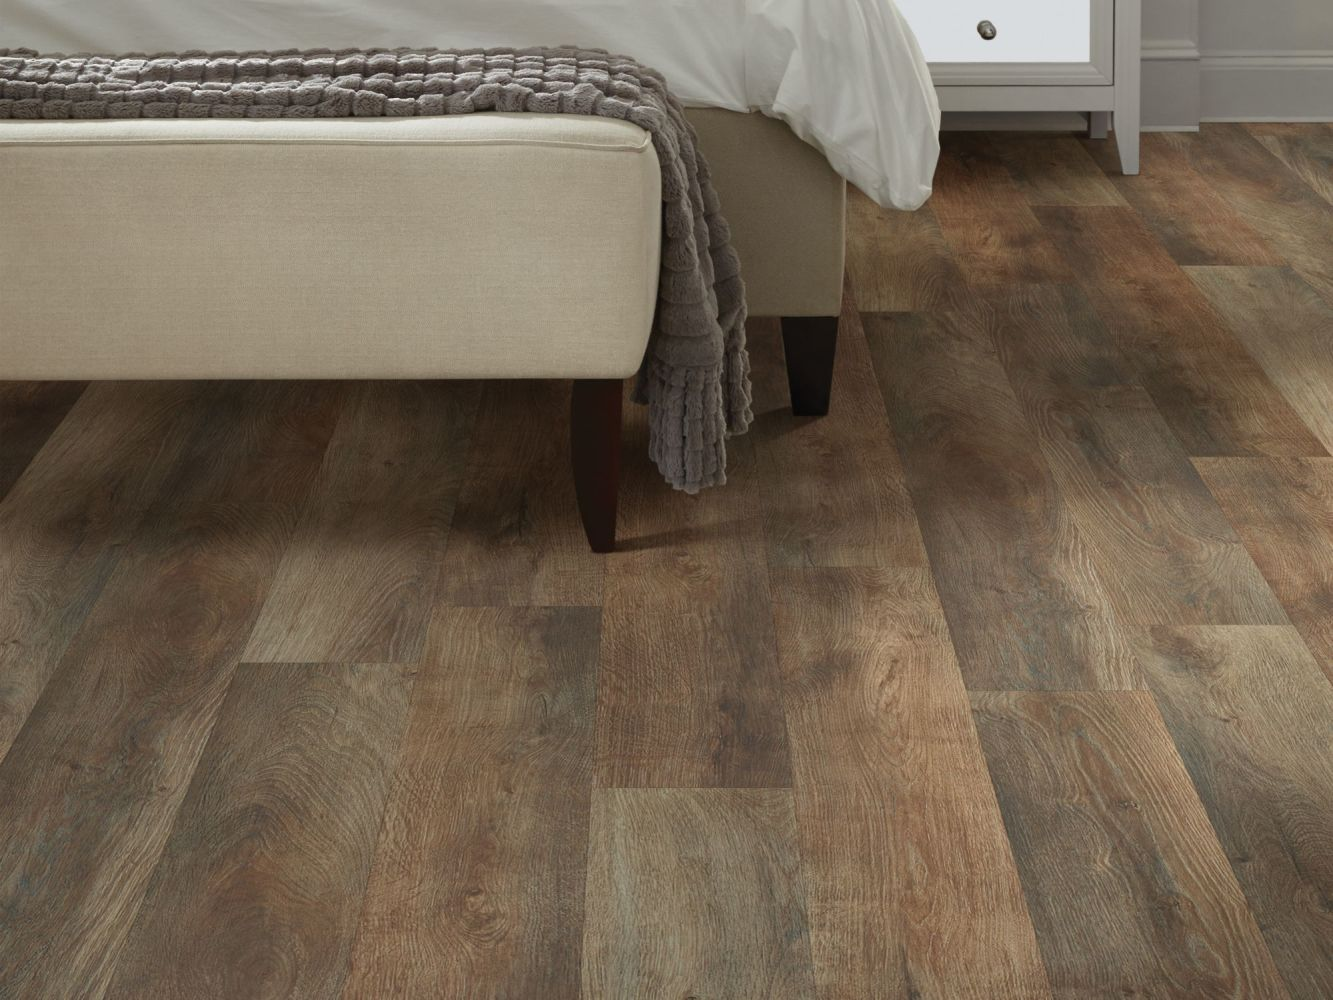 Shaw Floors Vinyl Property Solutions Brio Plus Highlight Oak 07061_VE285